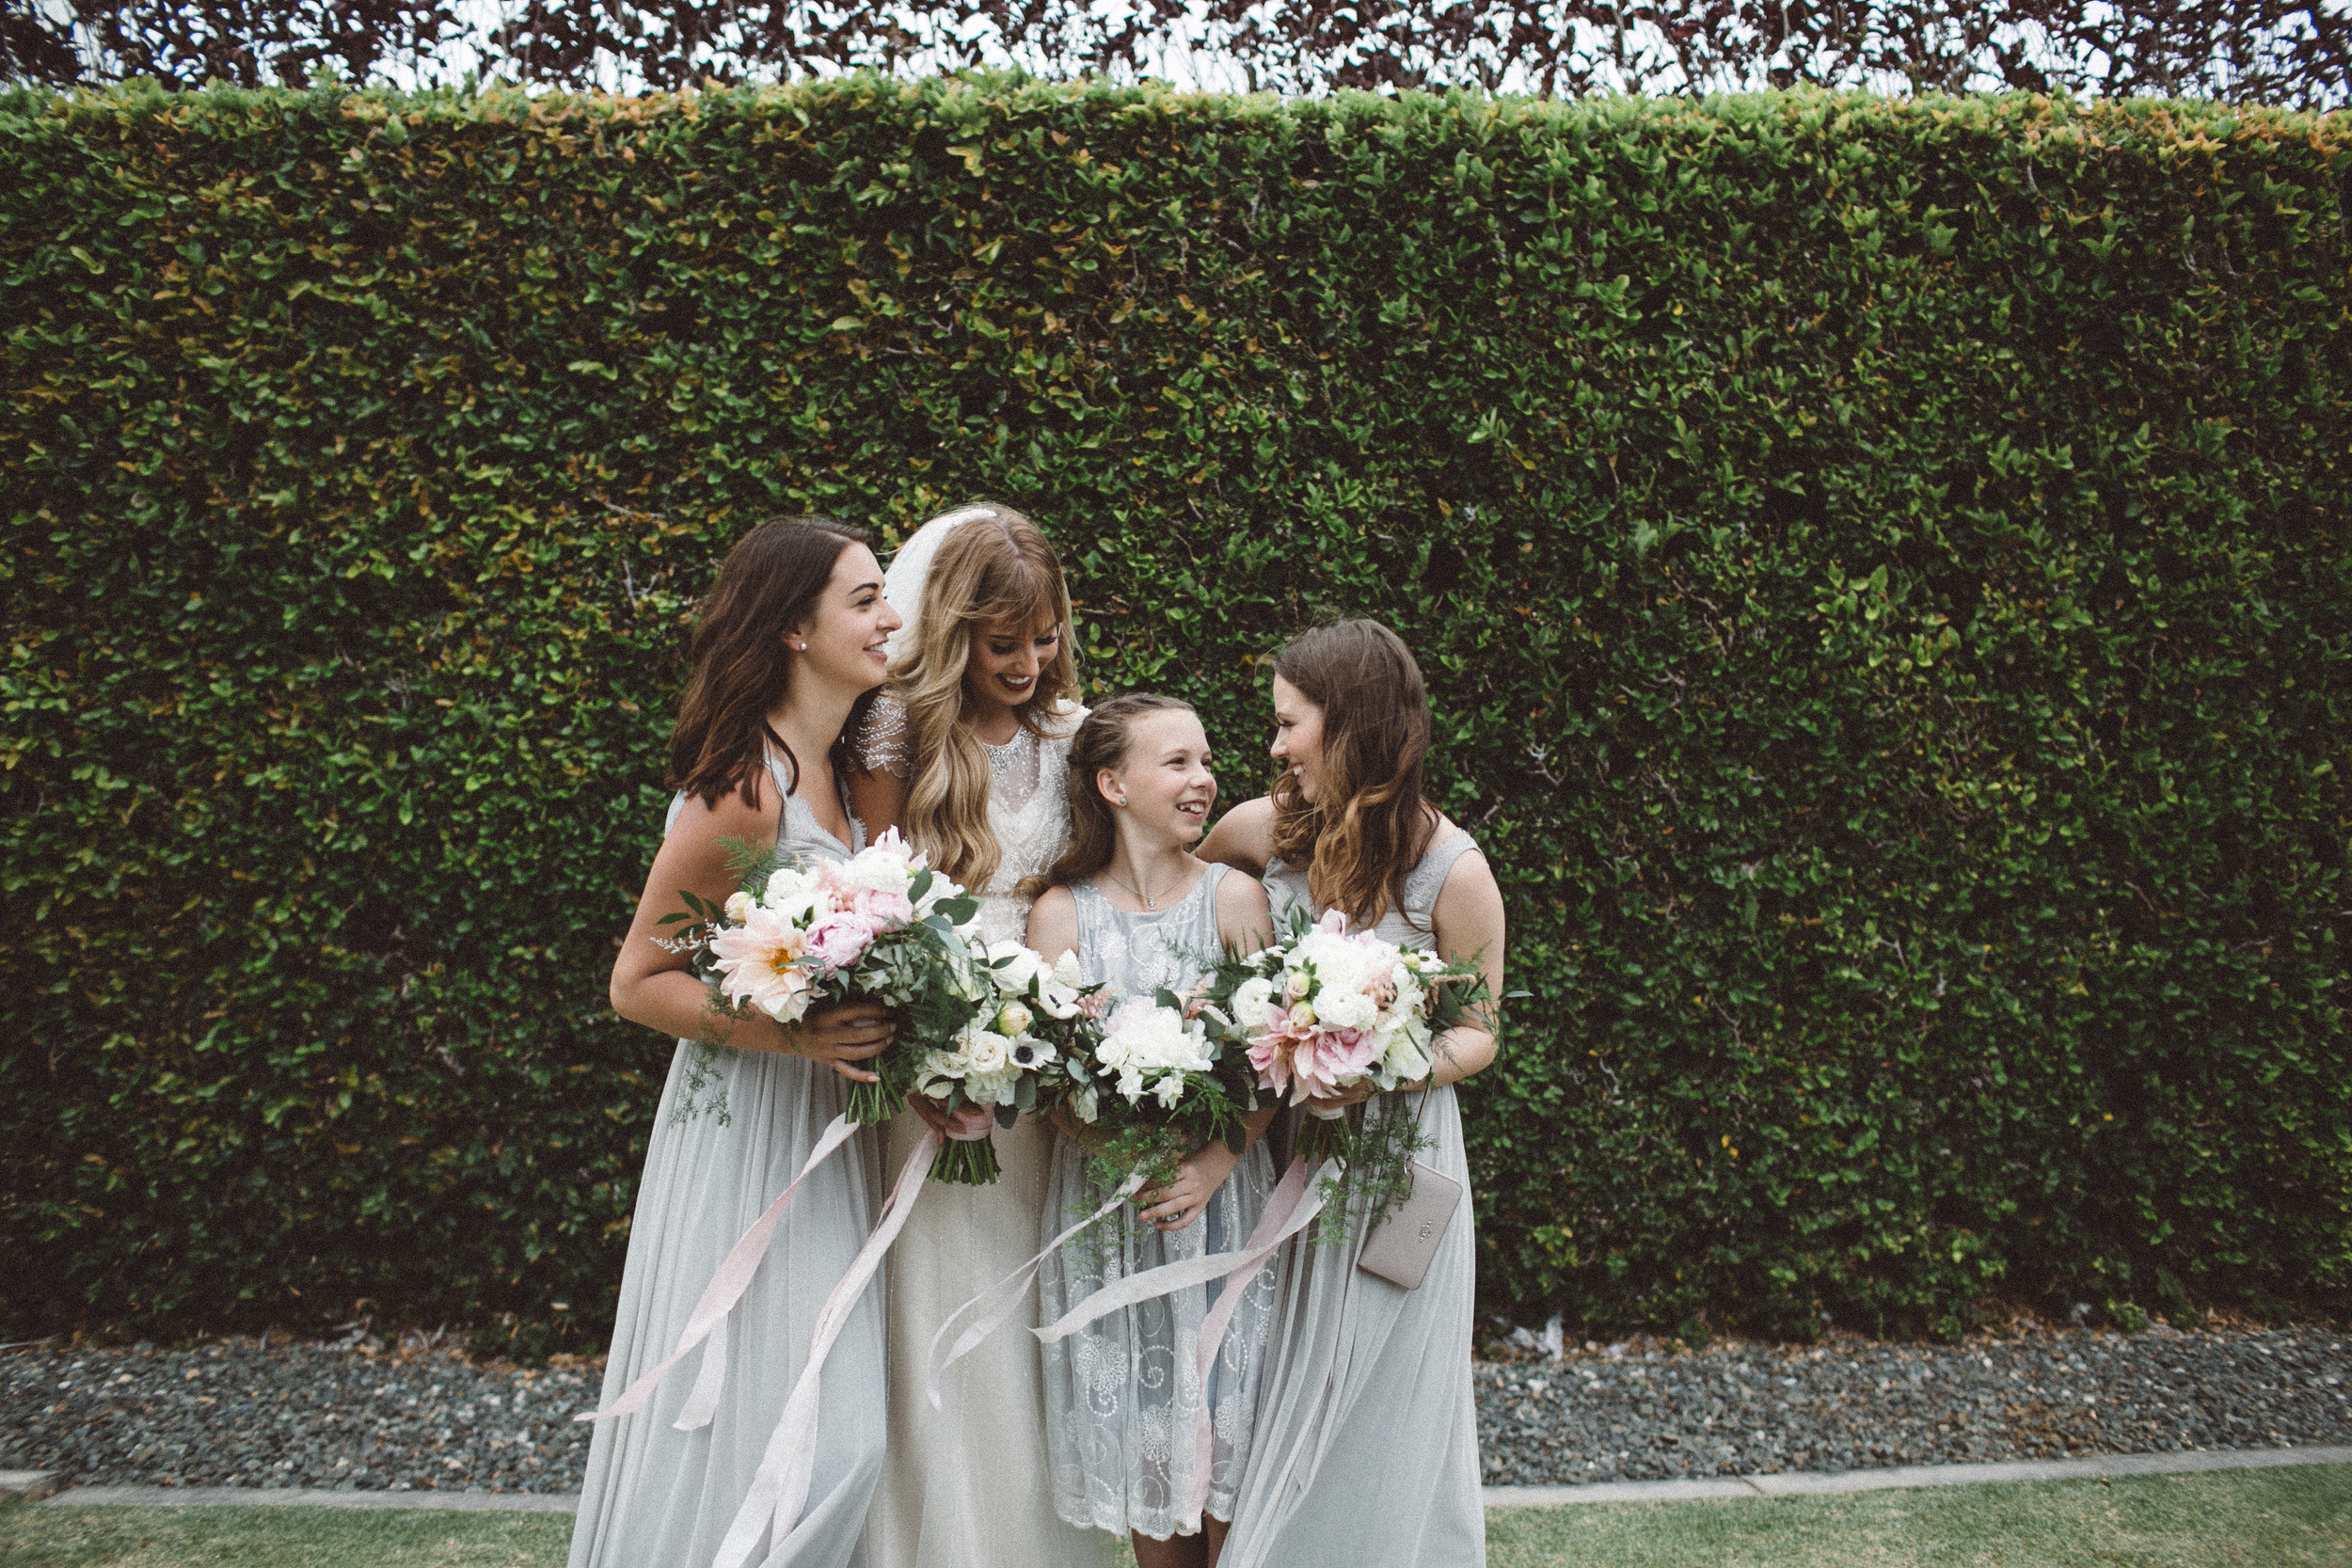 Oahu Wedding | Florals by Passion Roots | Photography by A Fist Full of Bolts